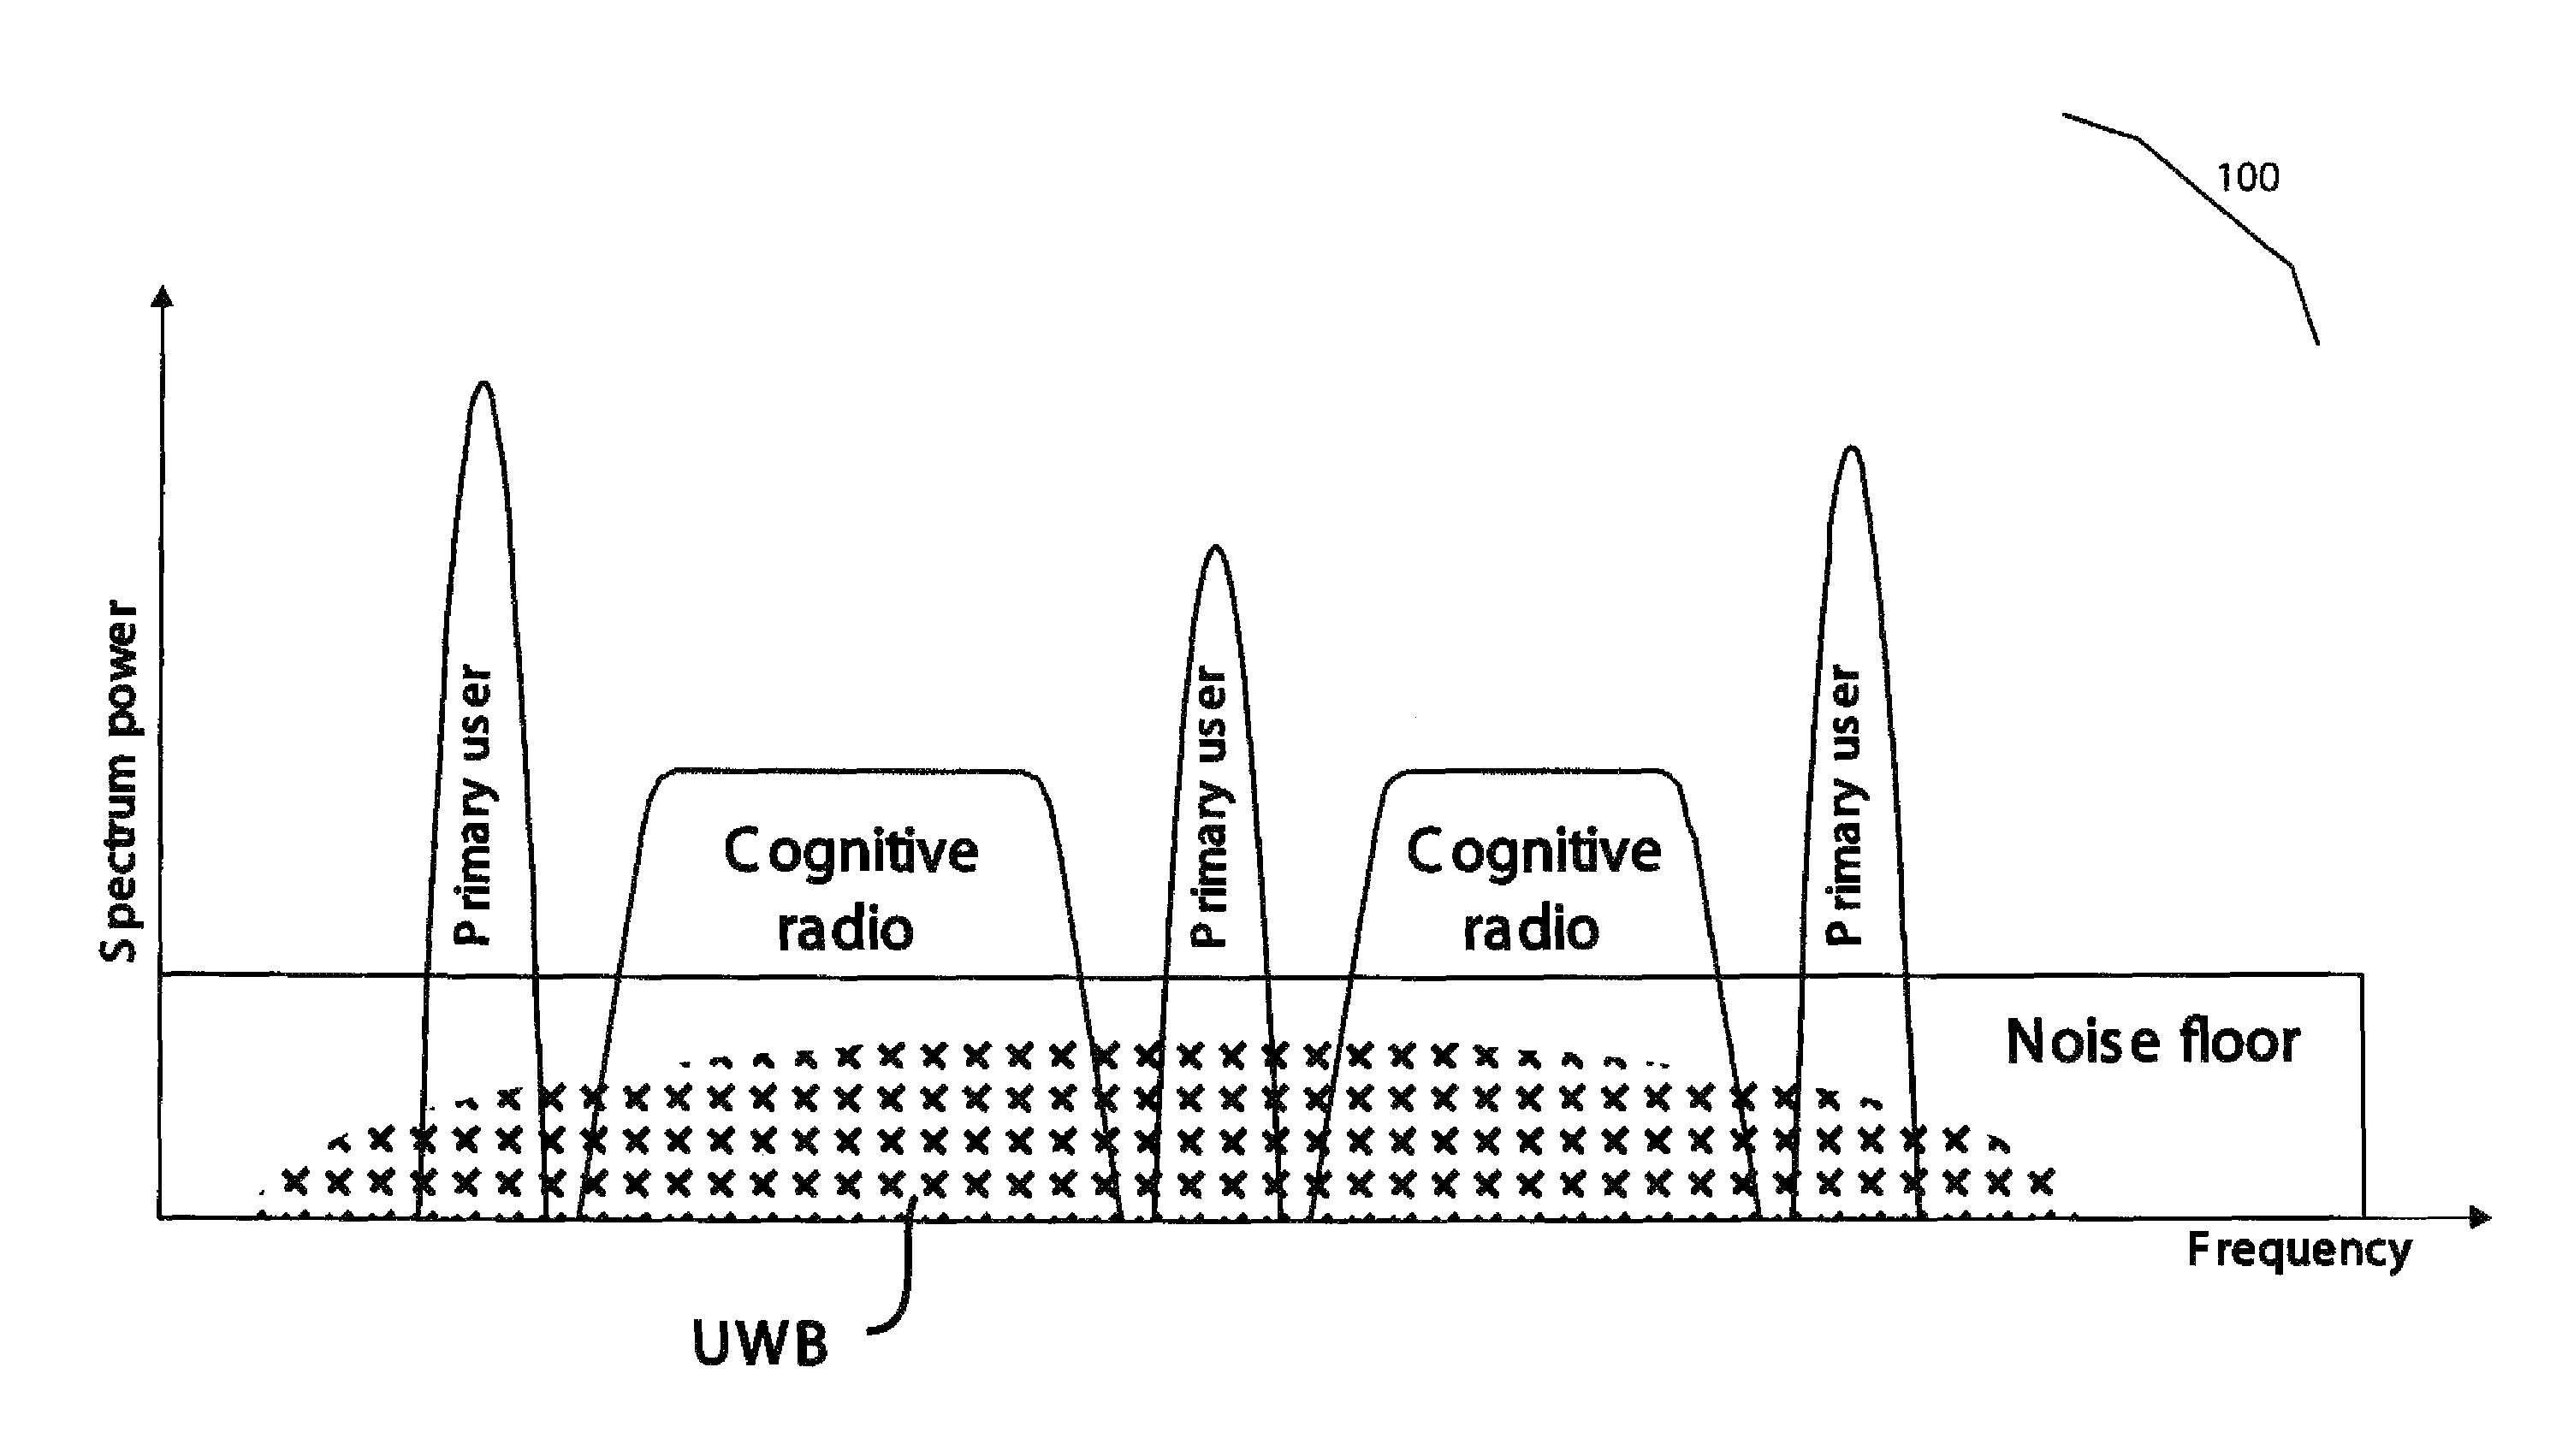 power control in cognitive radio-thesis Cognitive radio phd thesis offer to solve spectrum shortage problem and spectrum under cognitive radio thesis vanet but it consumes enormous power.